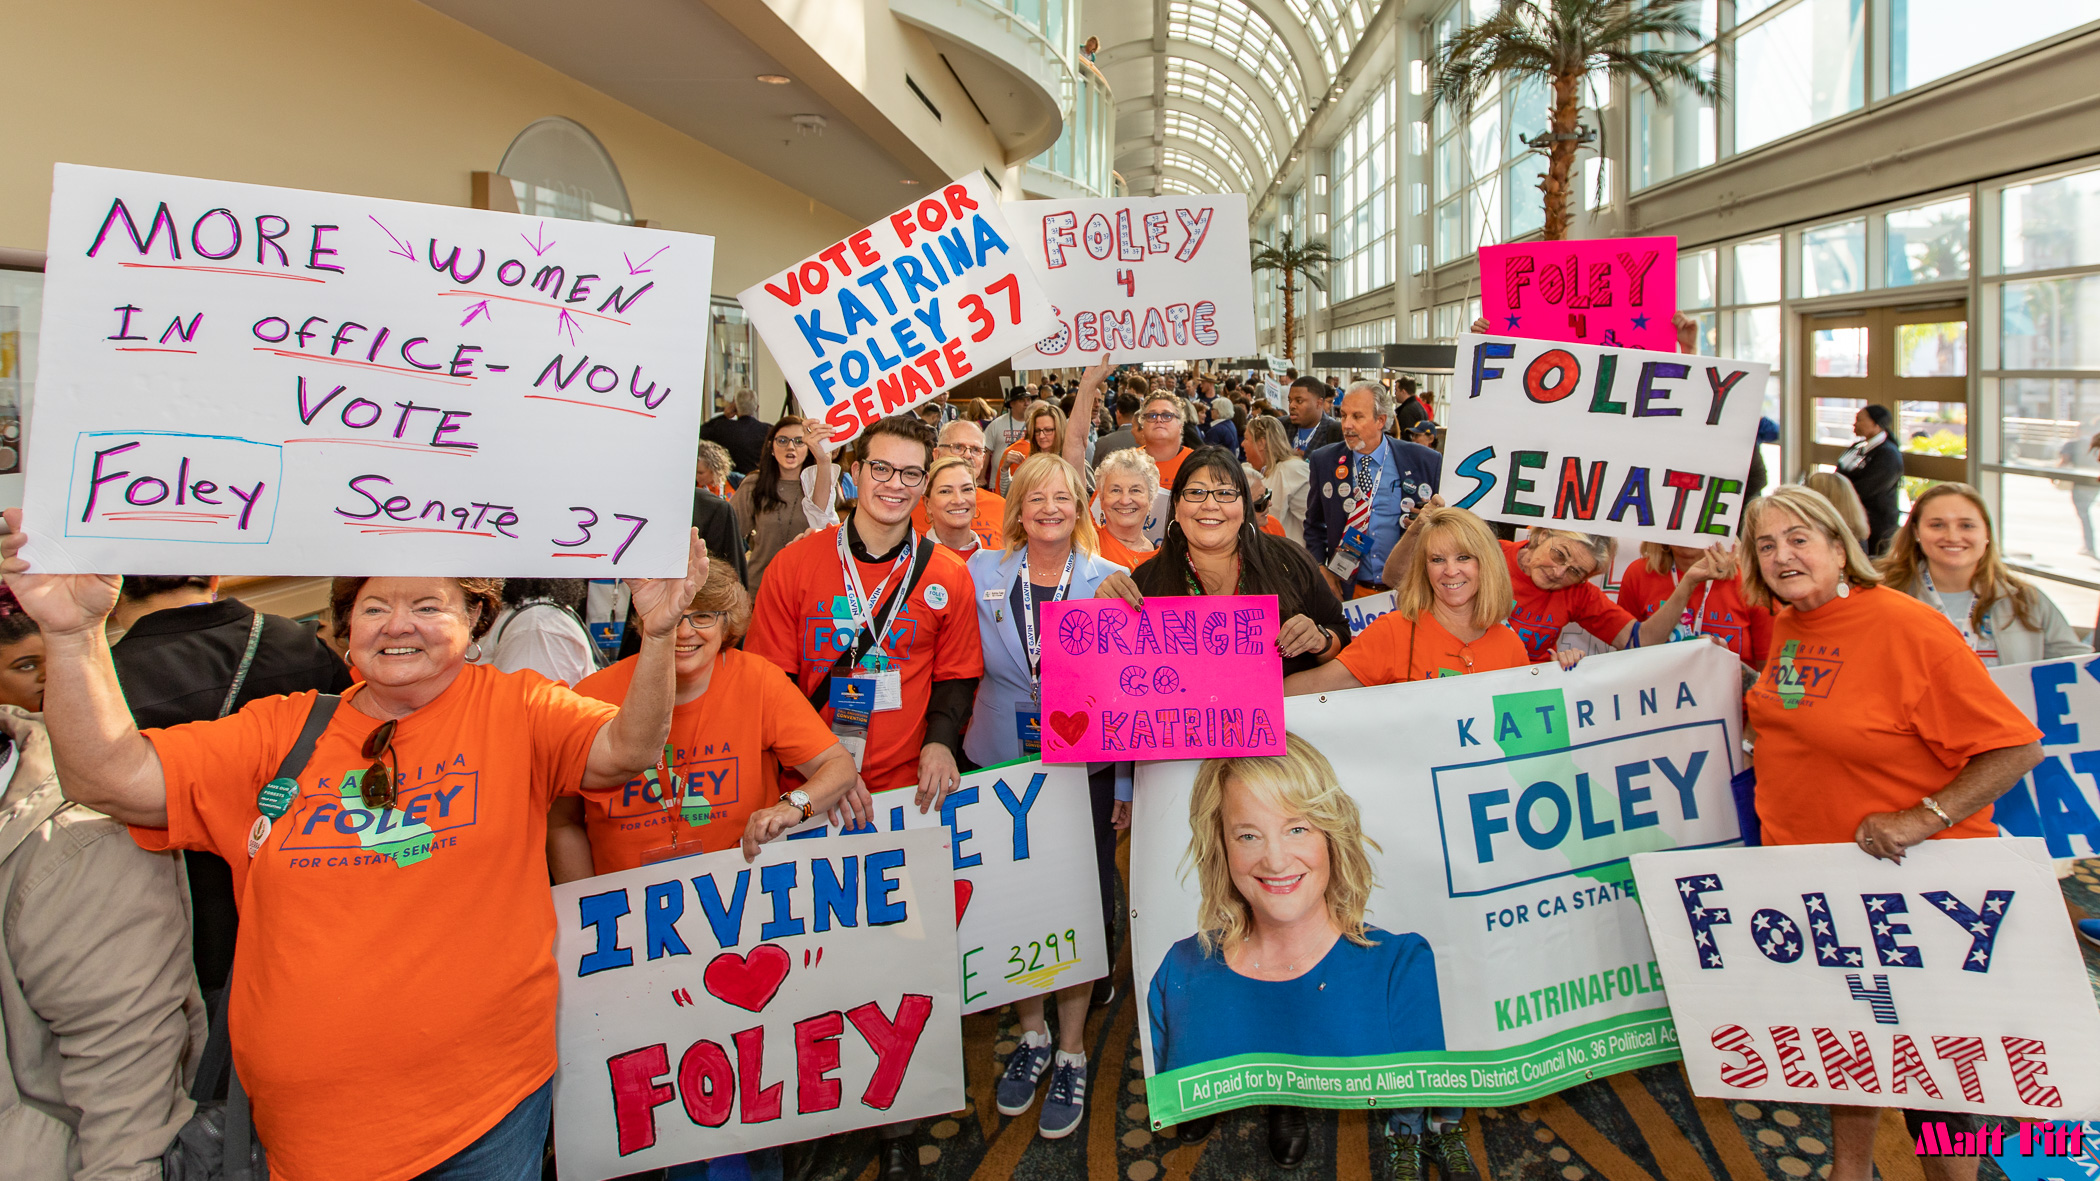 Put More Women in Office Now  Katrina Foley for State Senate